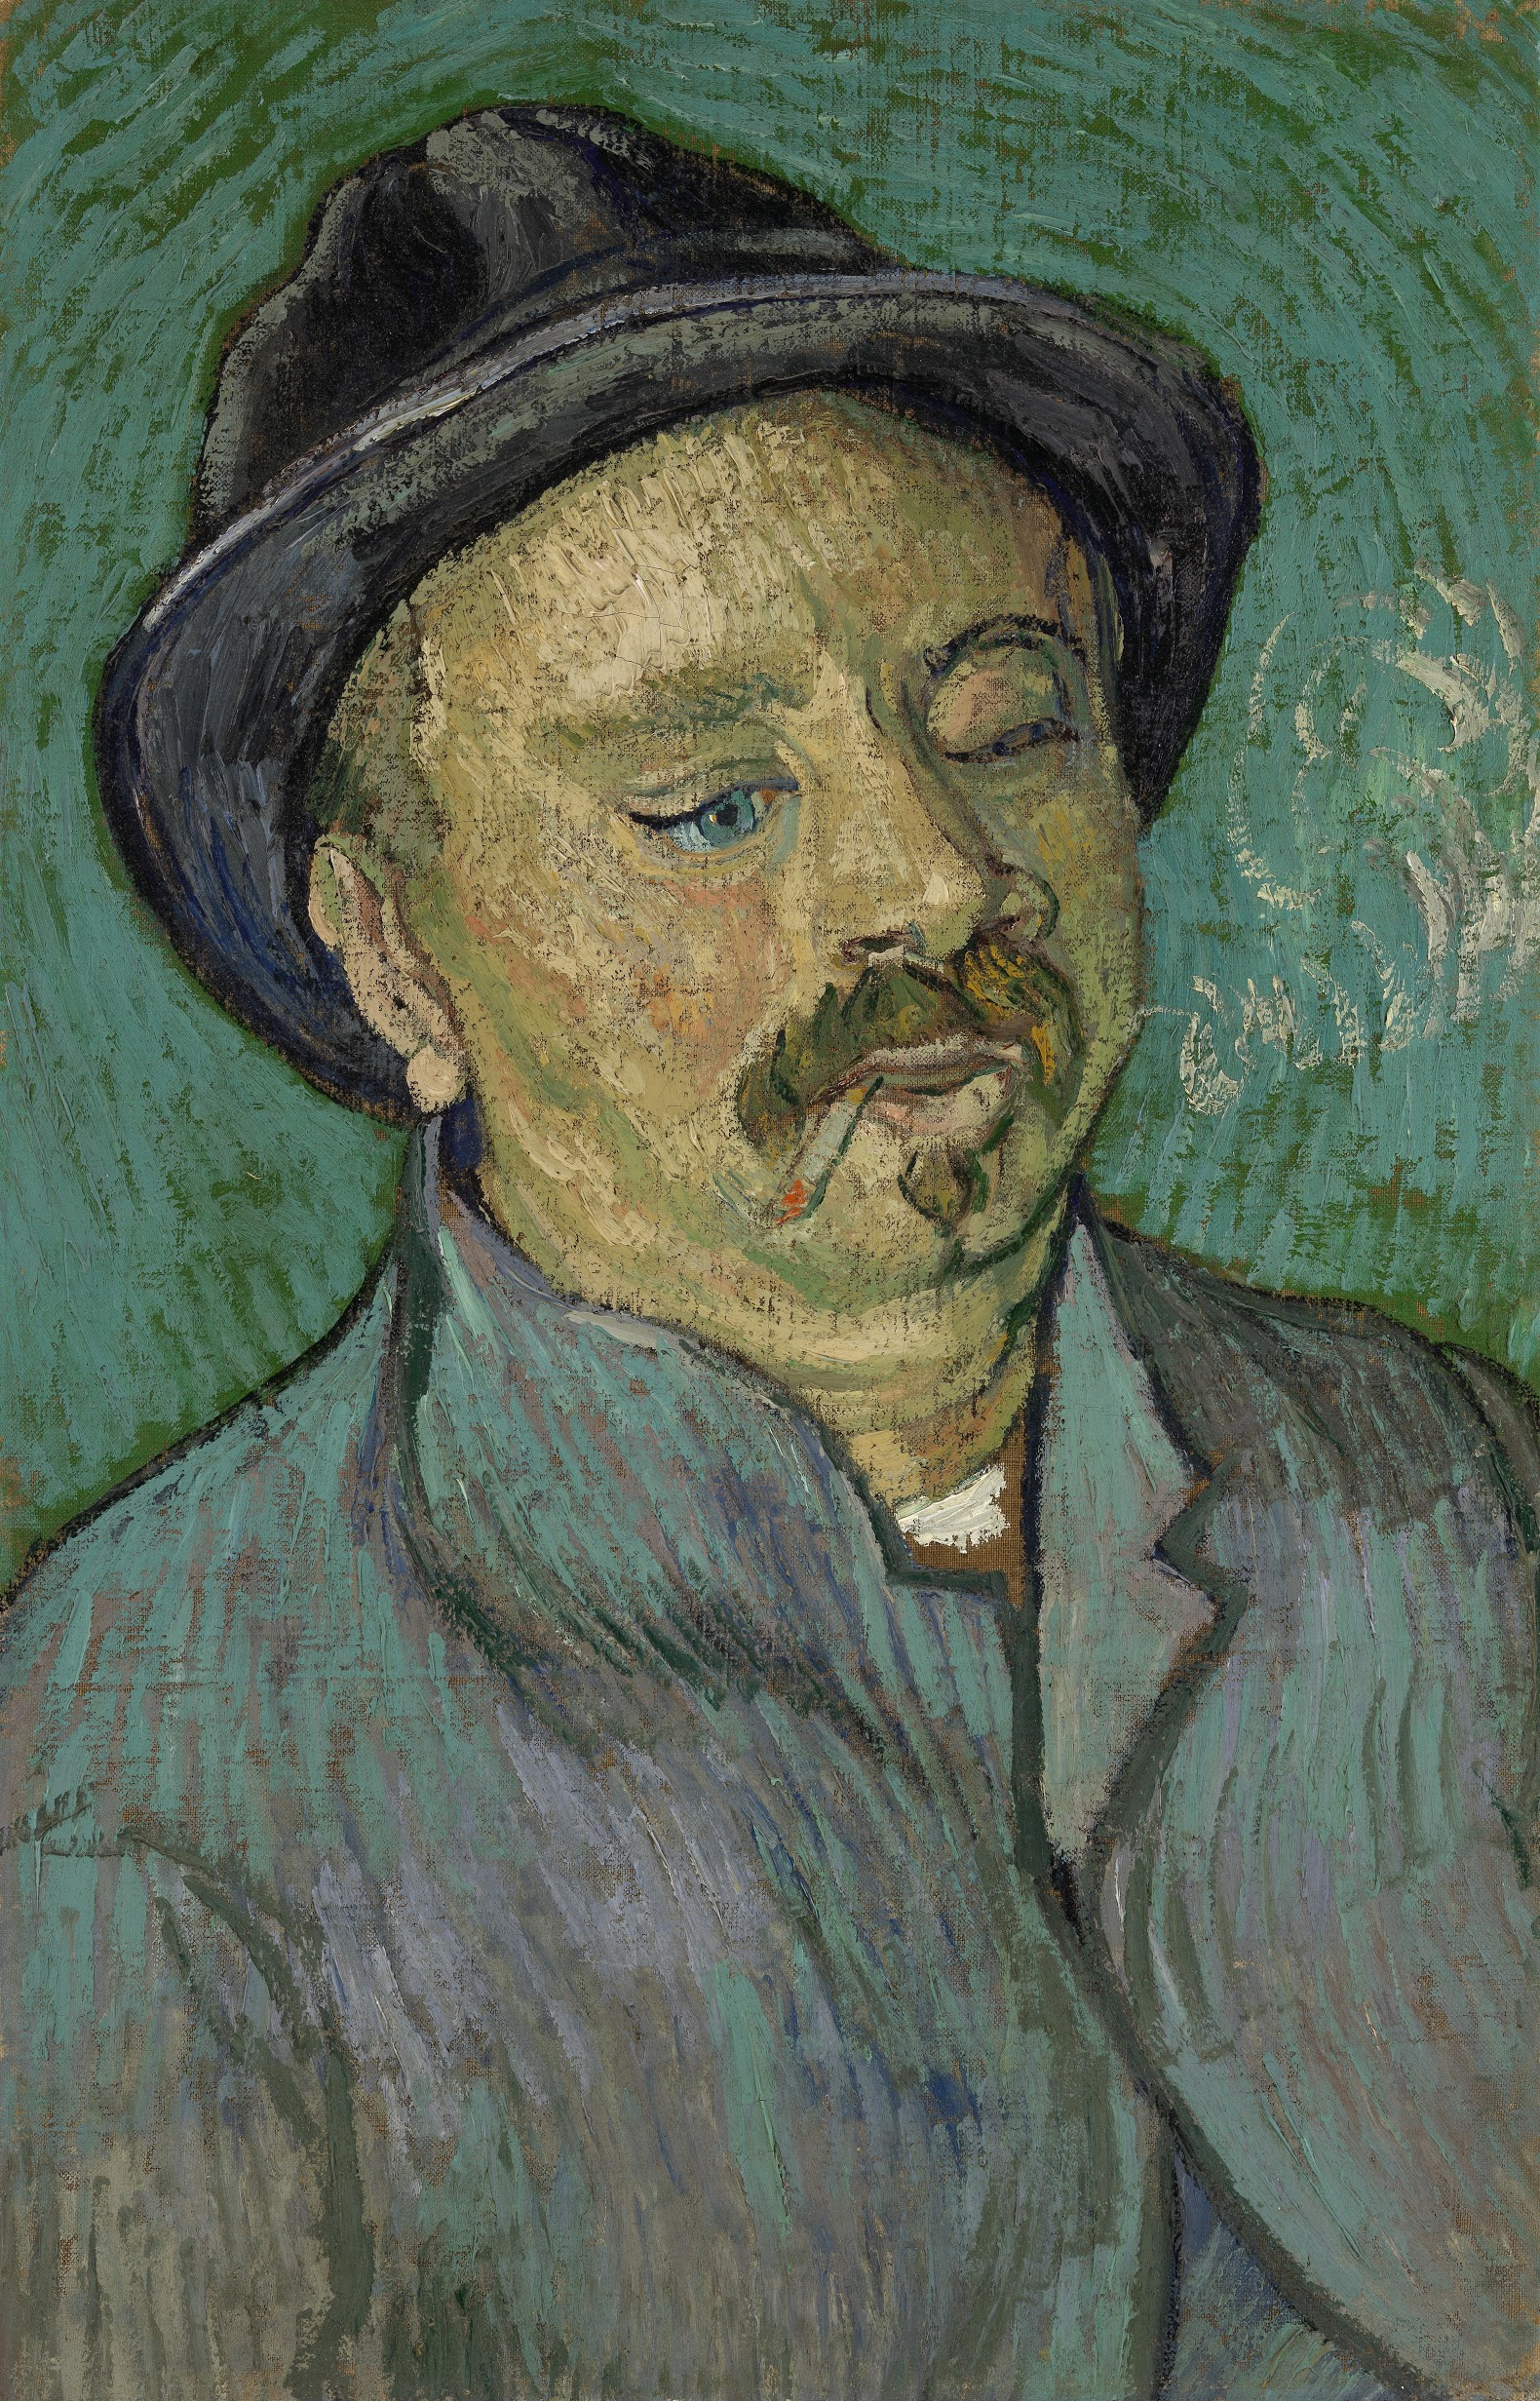 Portrait of a One-Eyed Man 1888